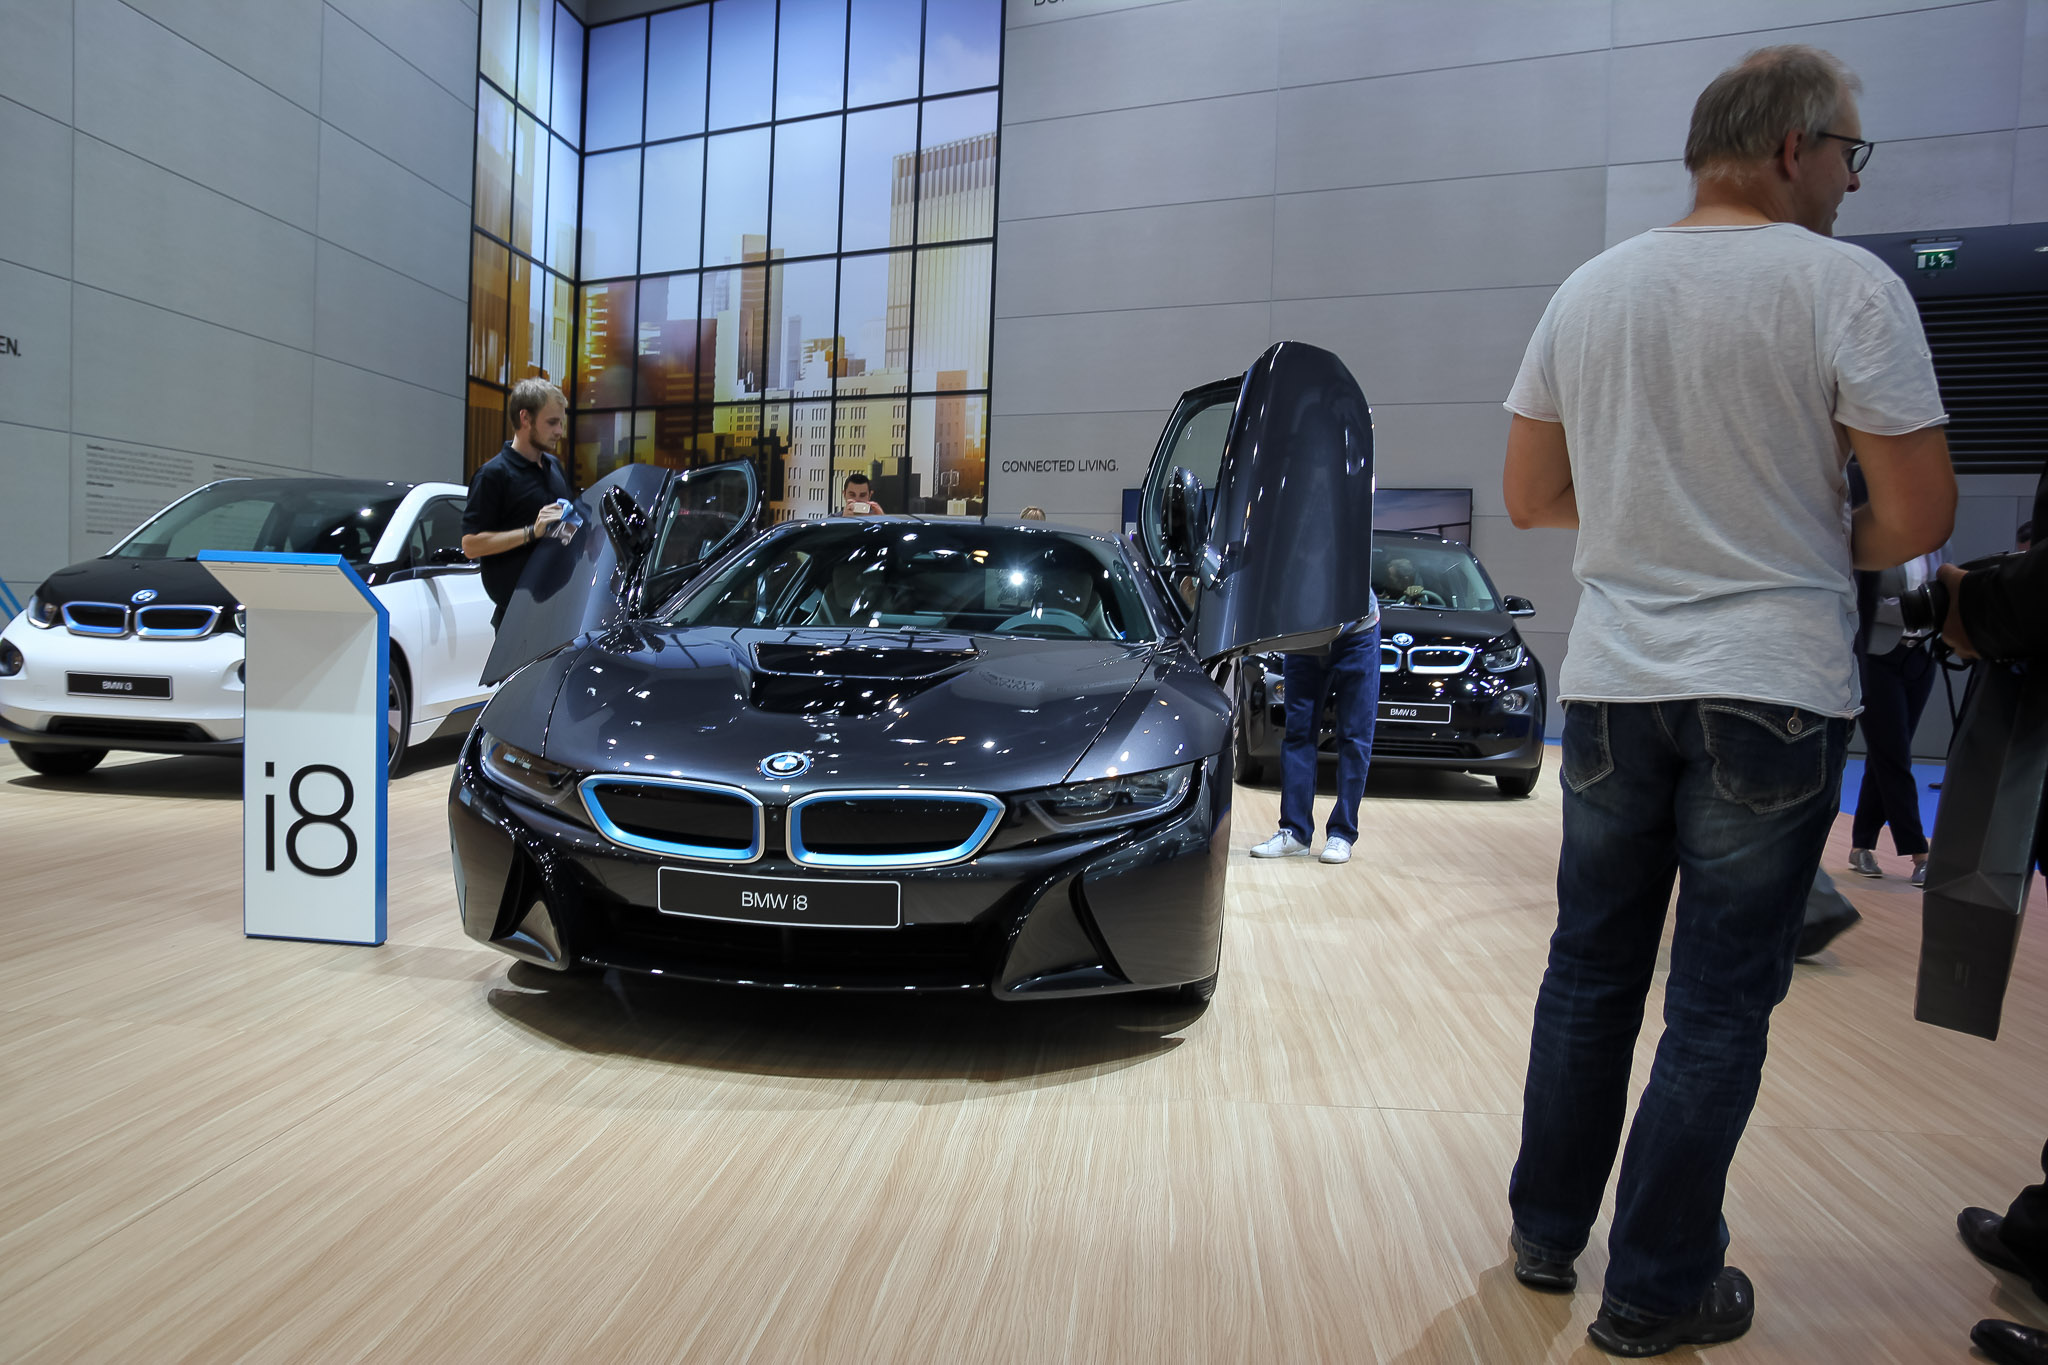 frankfurt iaa 2015 bmw i8 1. Black Bedroom Furniture Sets. Home Design Ideas